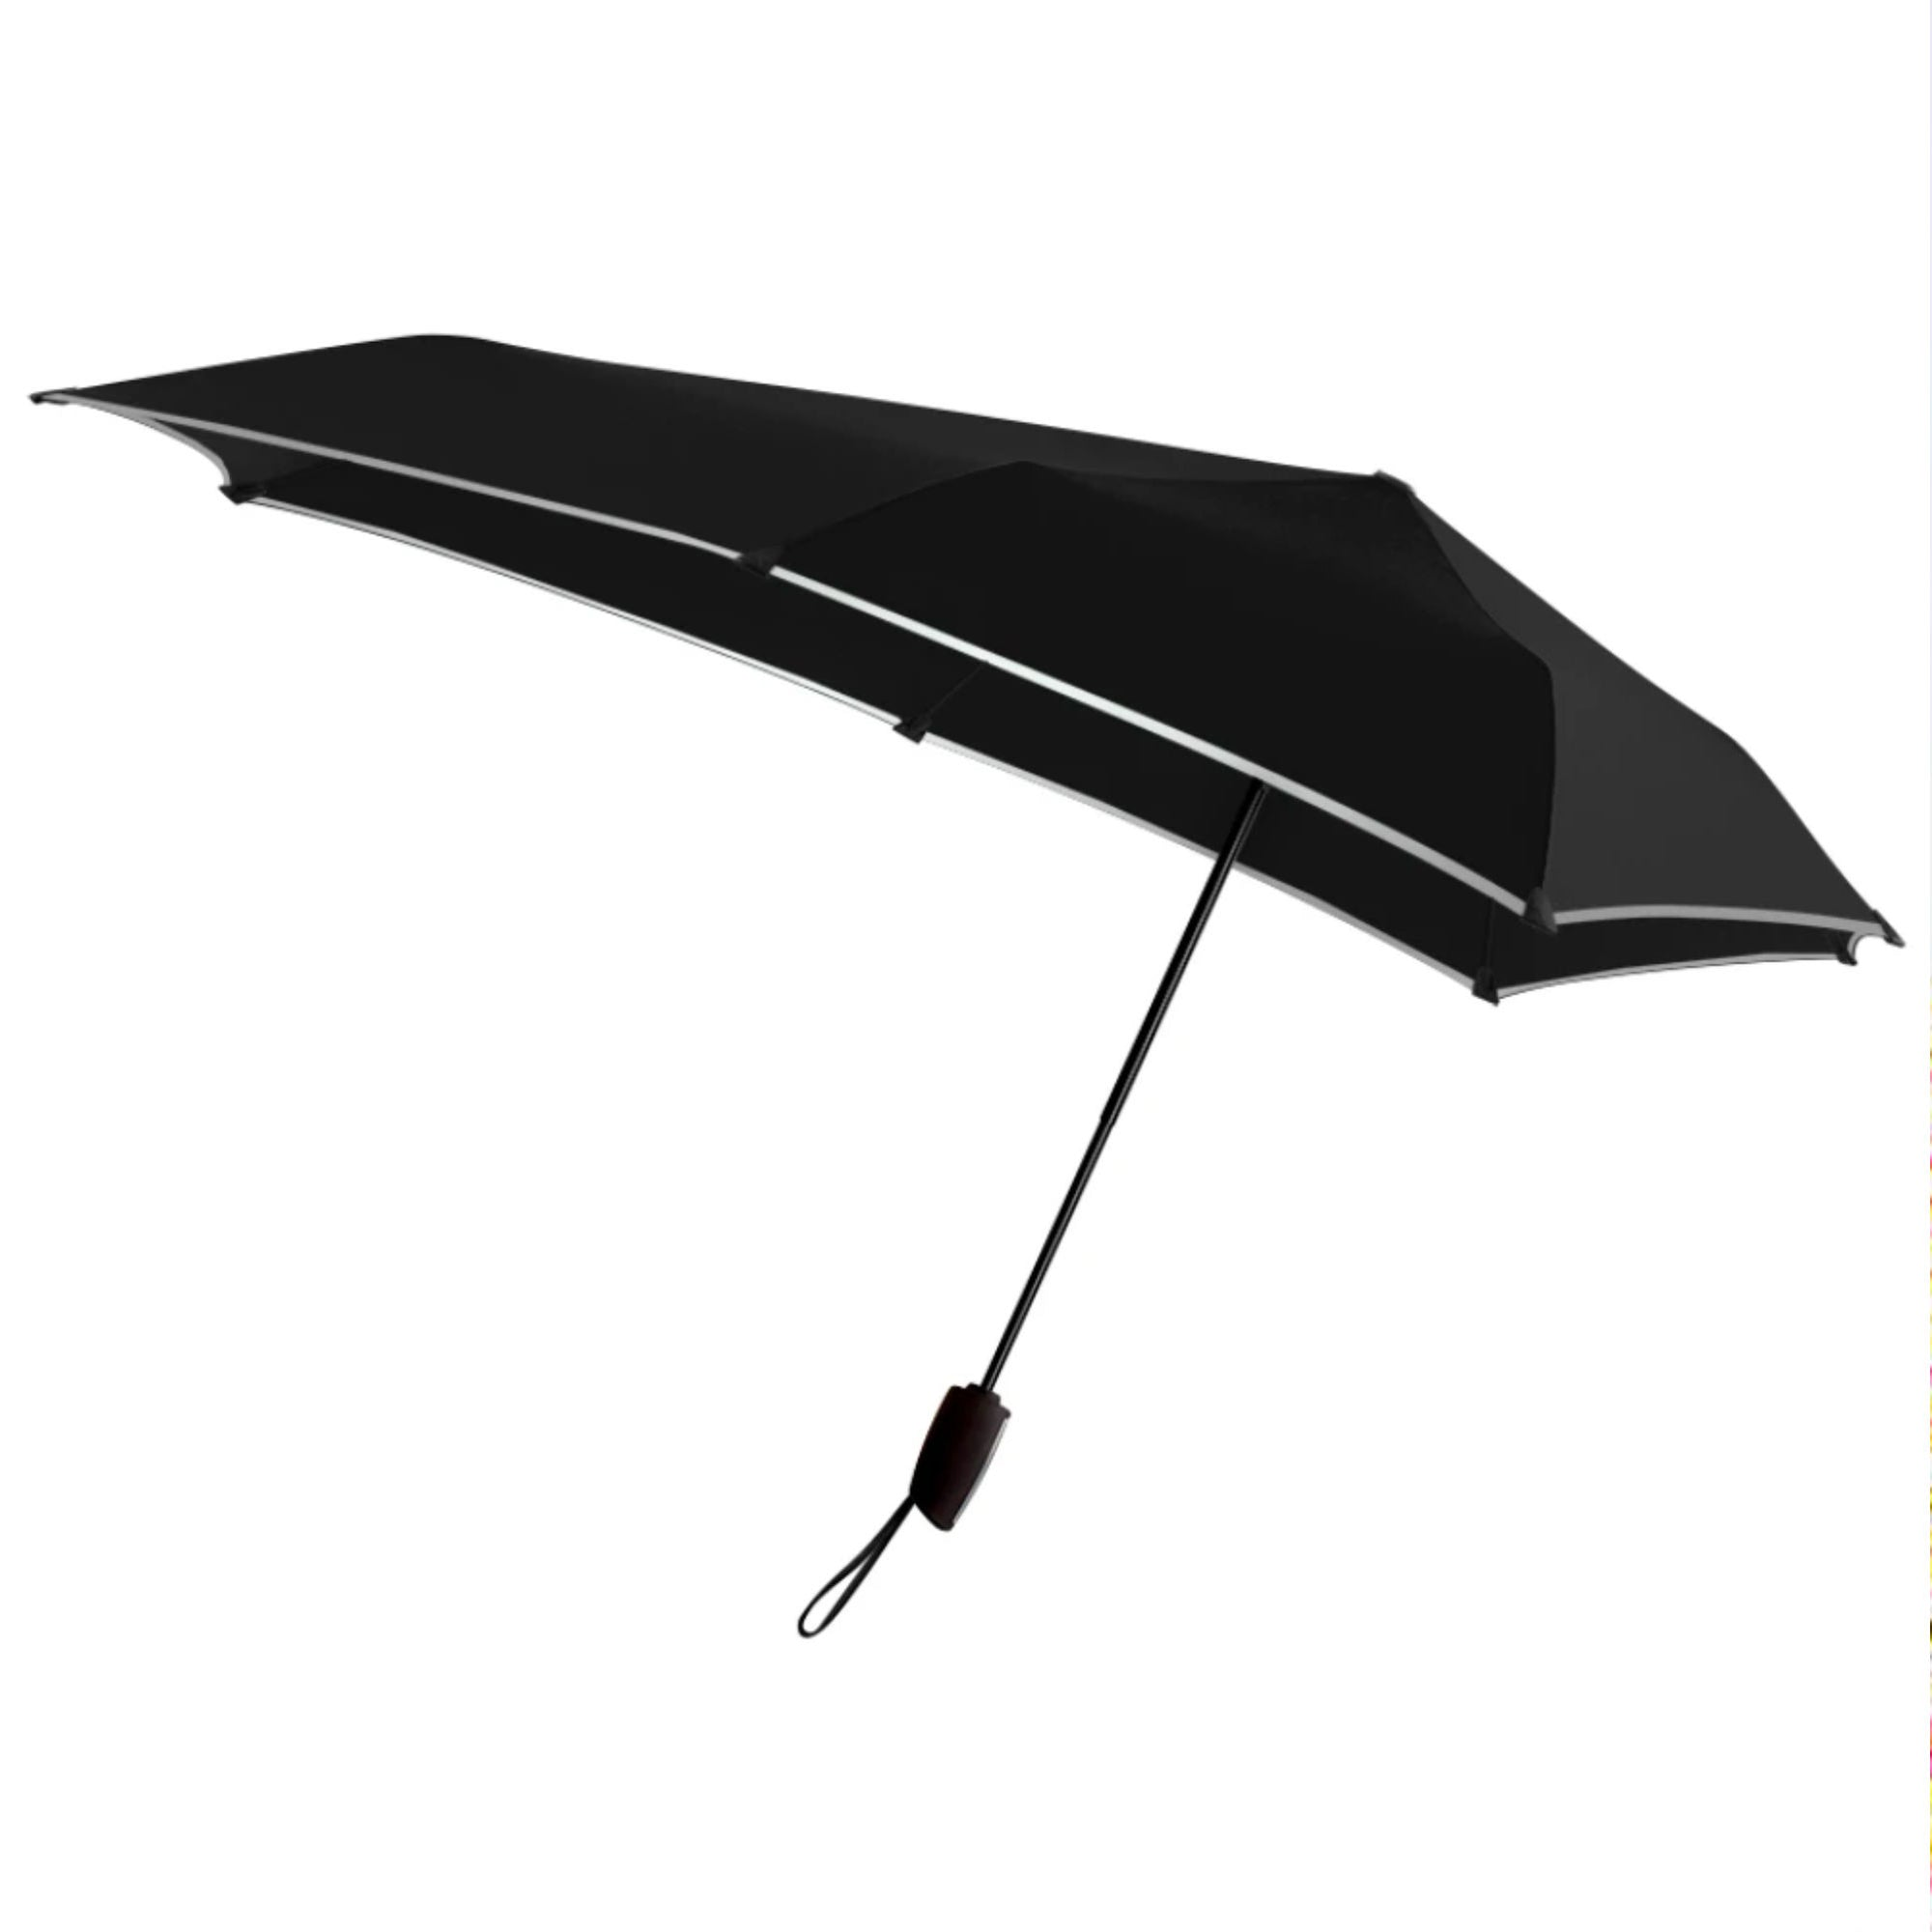 Senz° Automatic foldable umbrella, pure black reflective